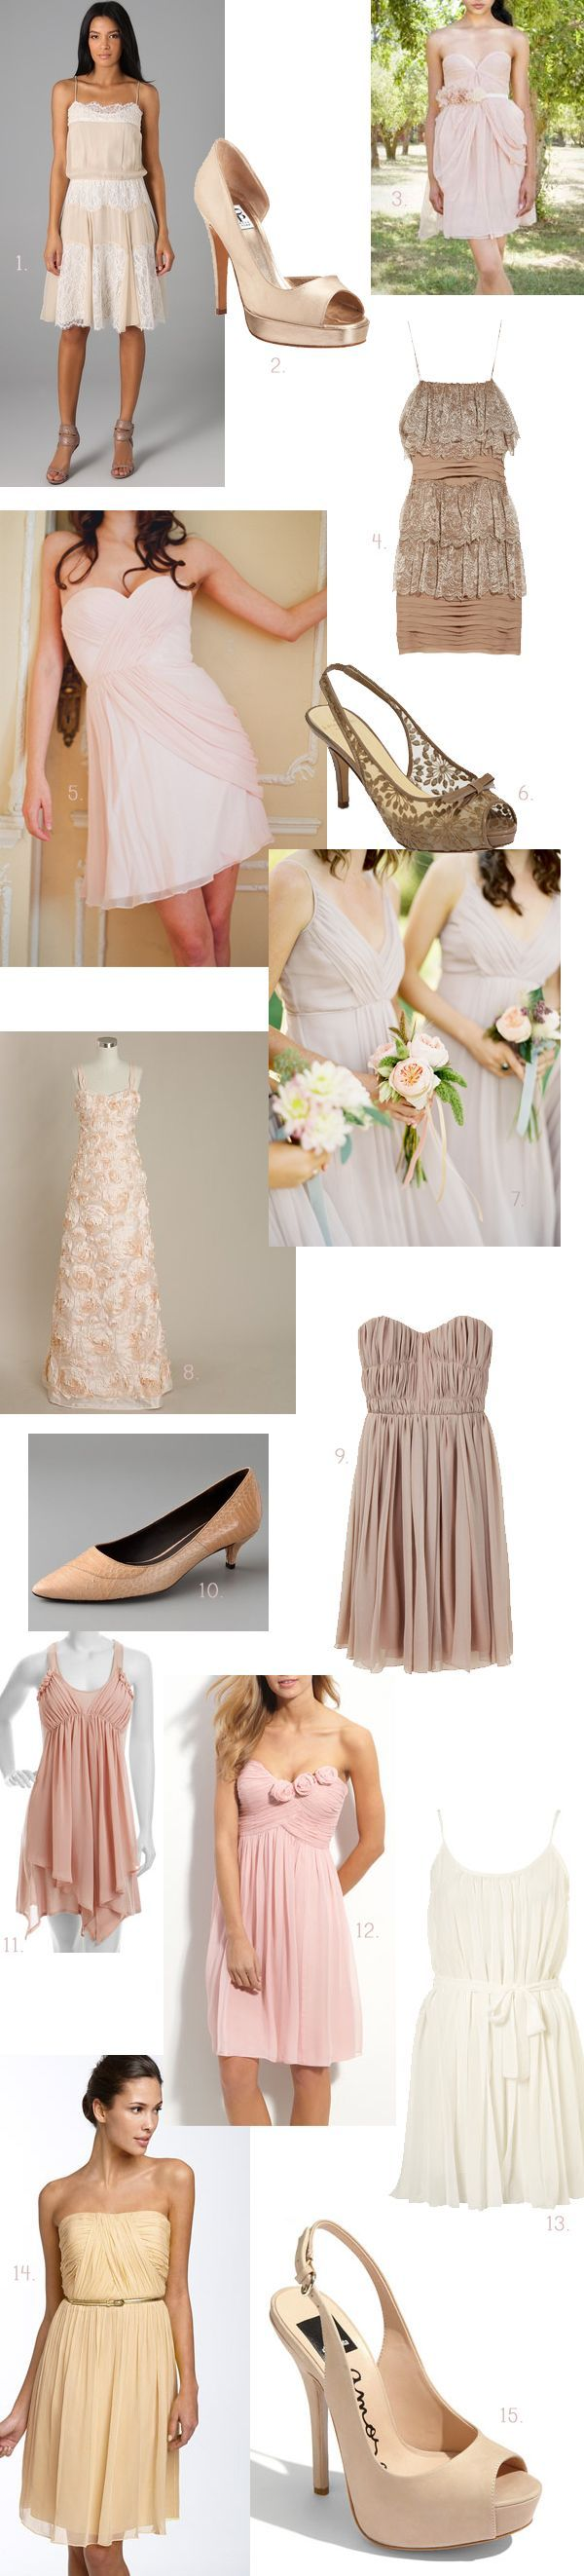 Blush Bridesmaid Dress Round Up